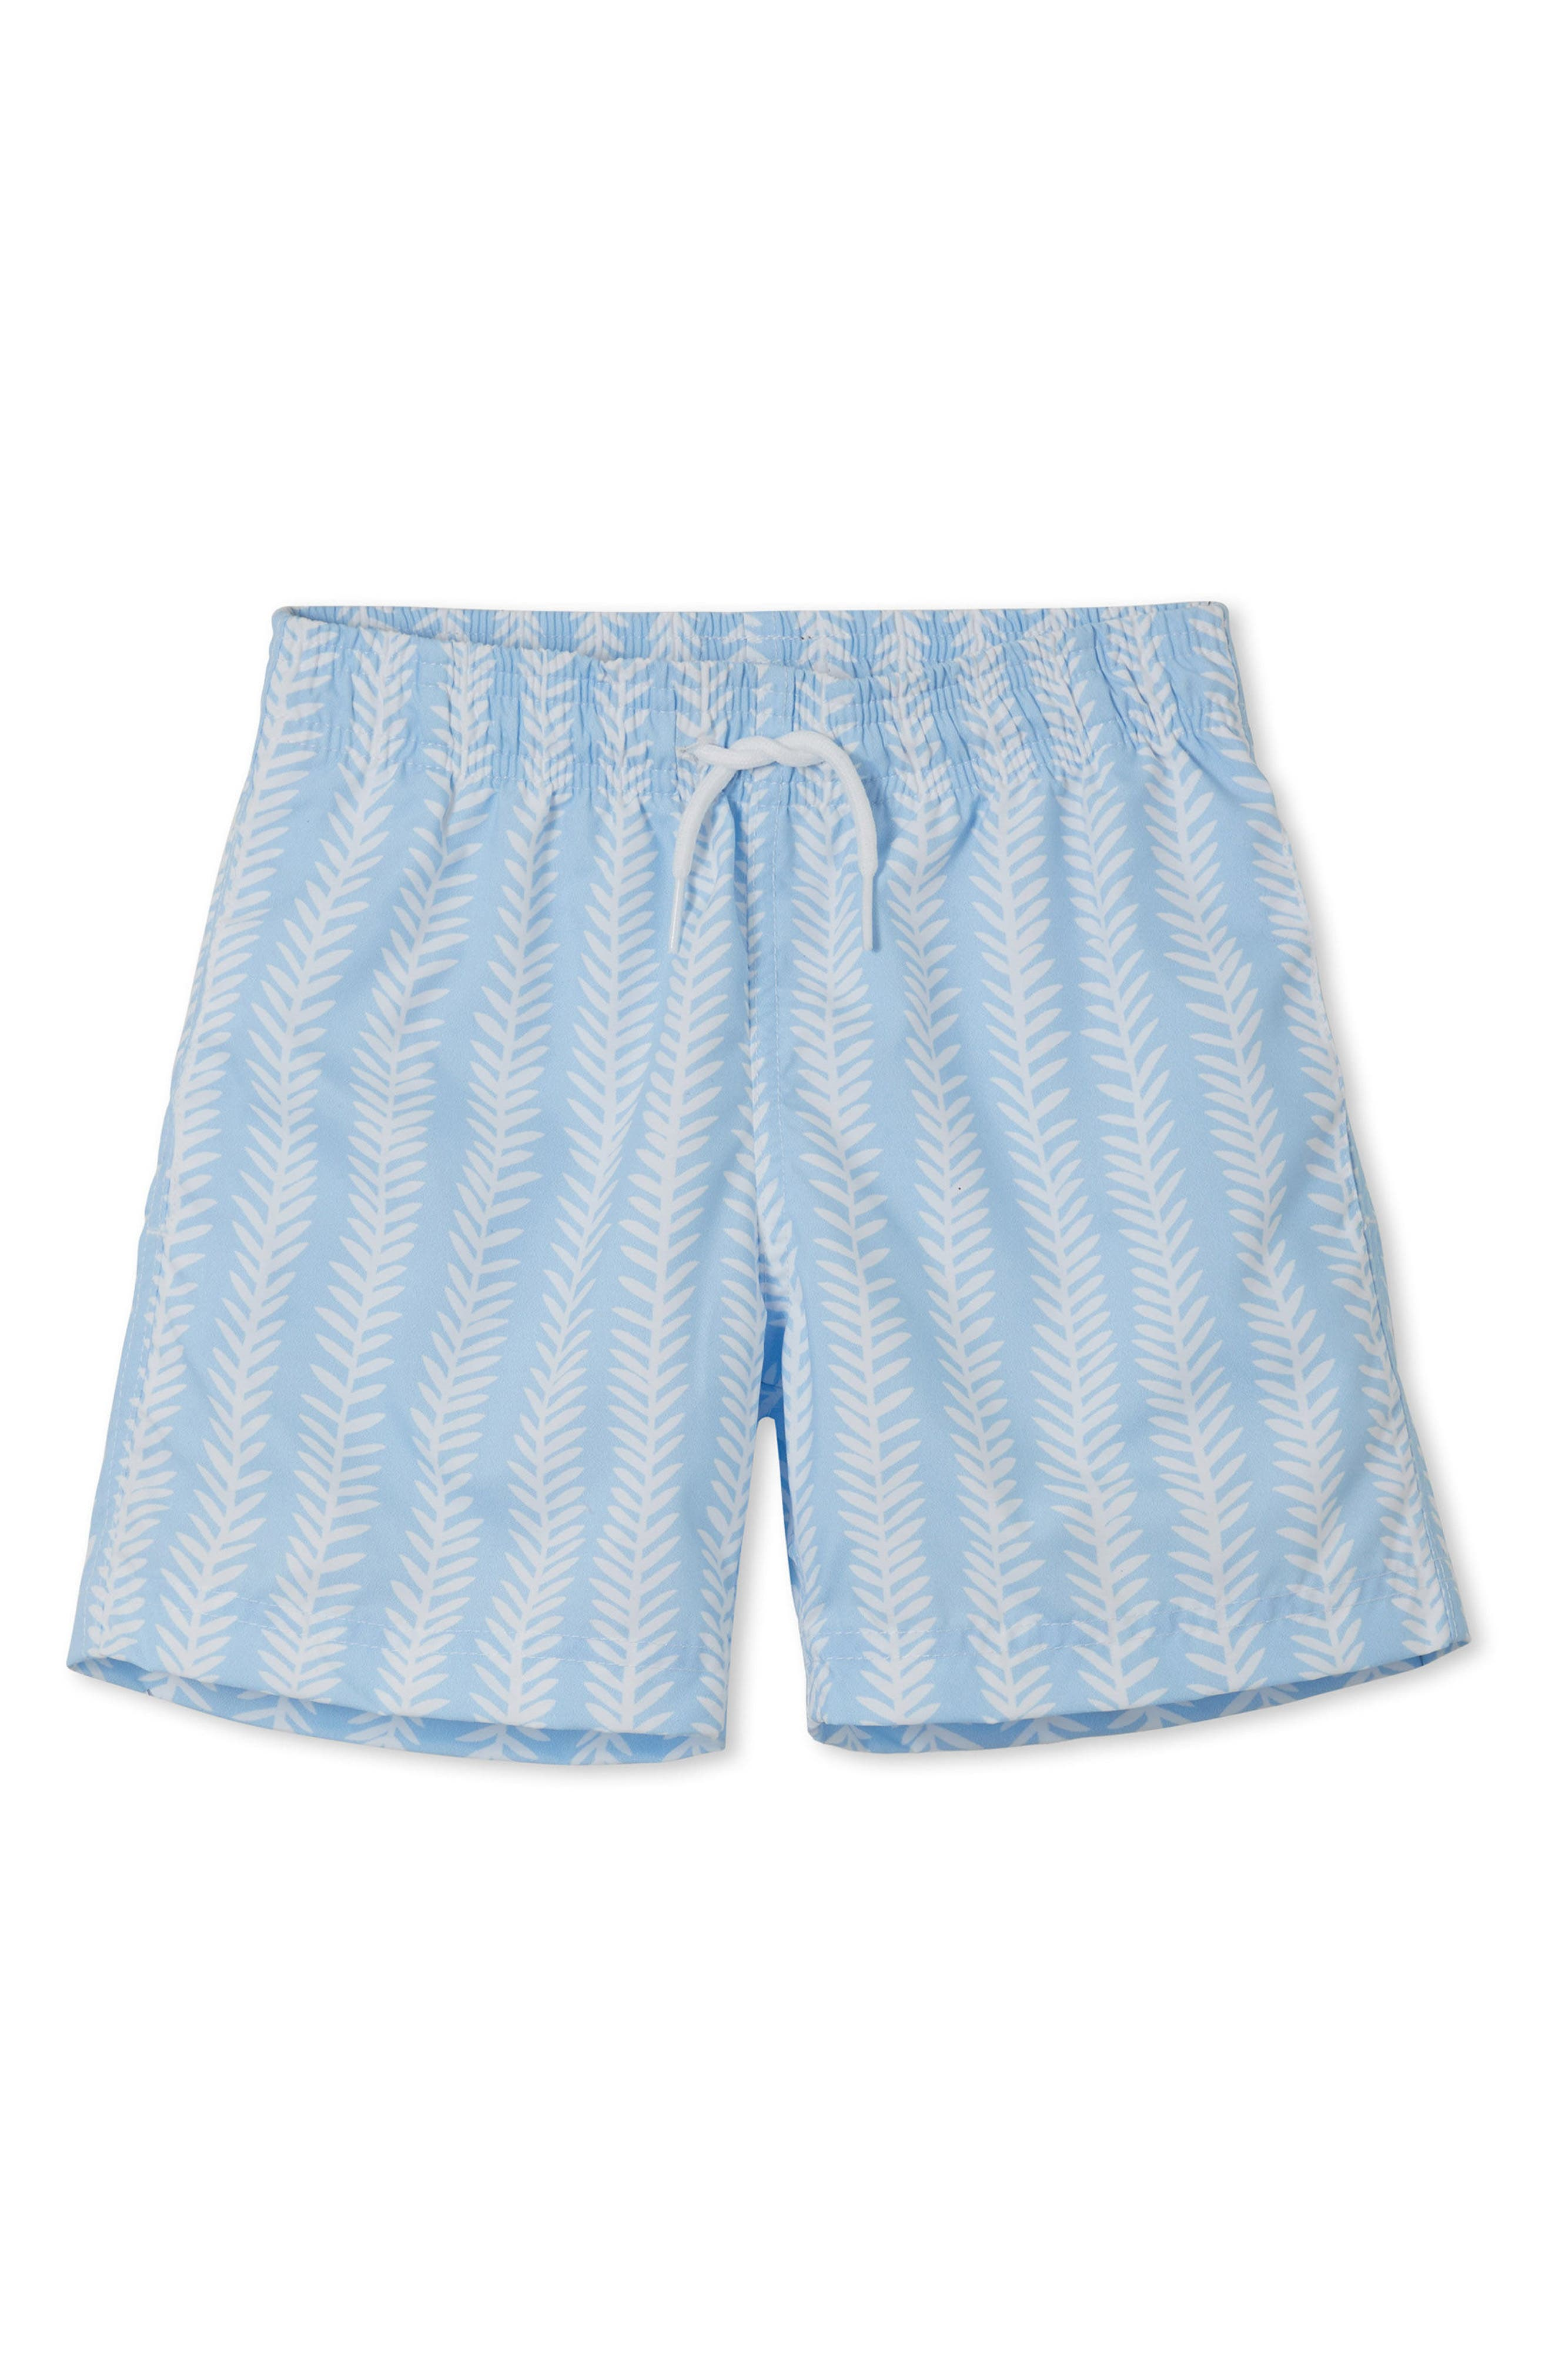 Coral Laurel Swim Trunks,                         Main,                         color, Blue